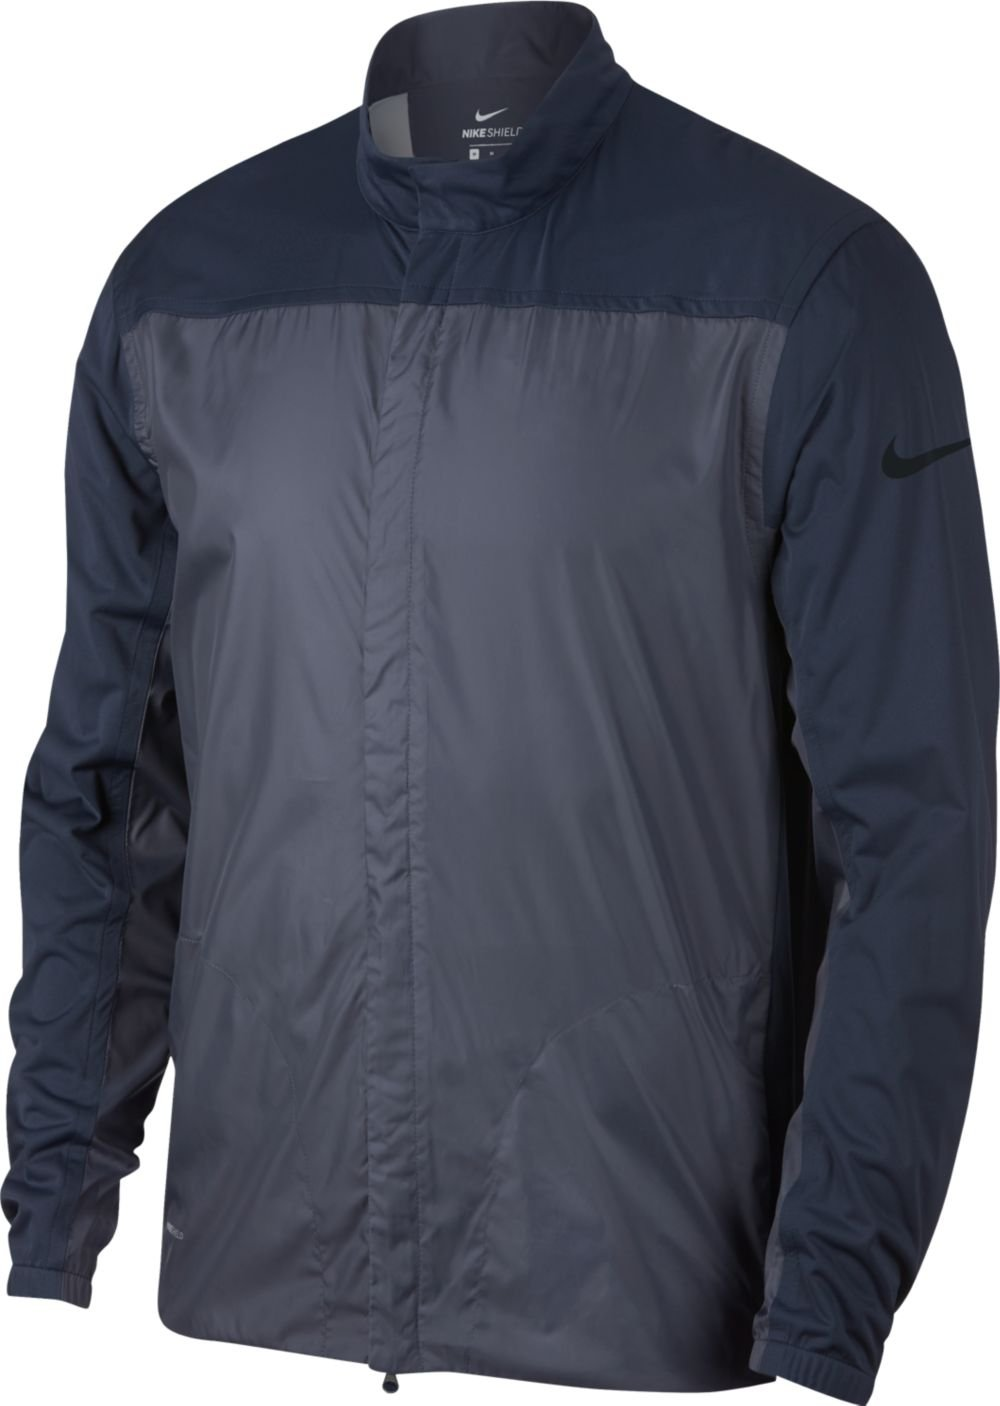 c6a828f8 Amazon.com : Nike Shield Full Zip Core Golf Jacket 2018 : Clothing